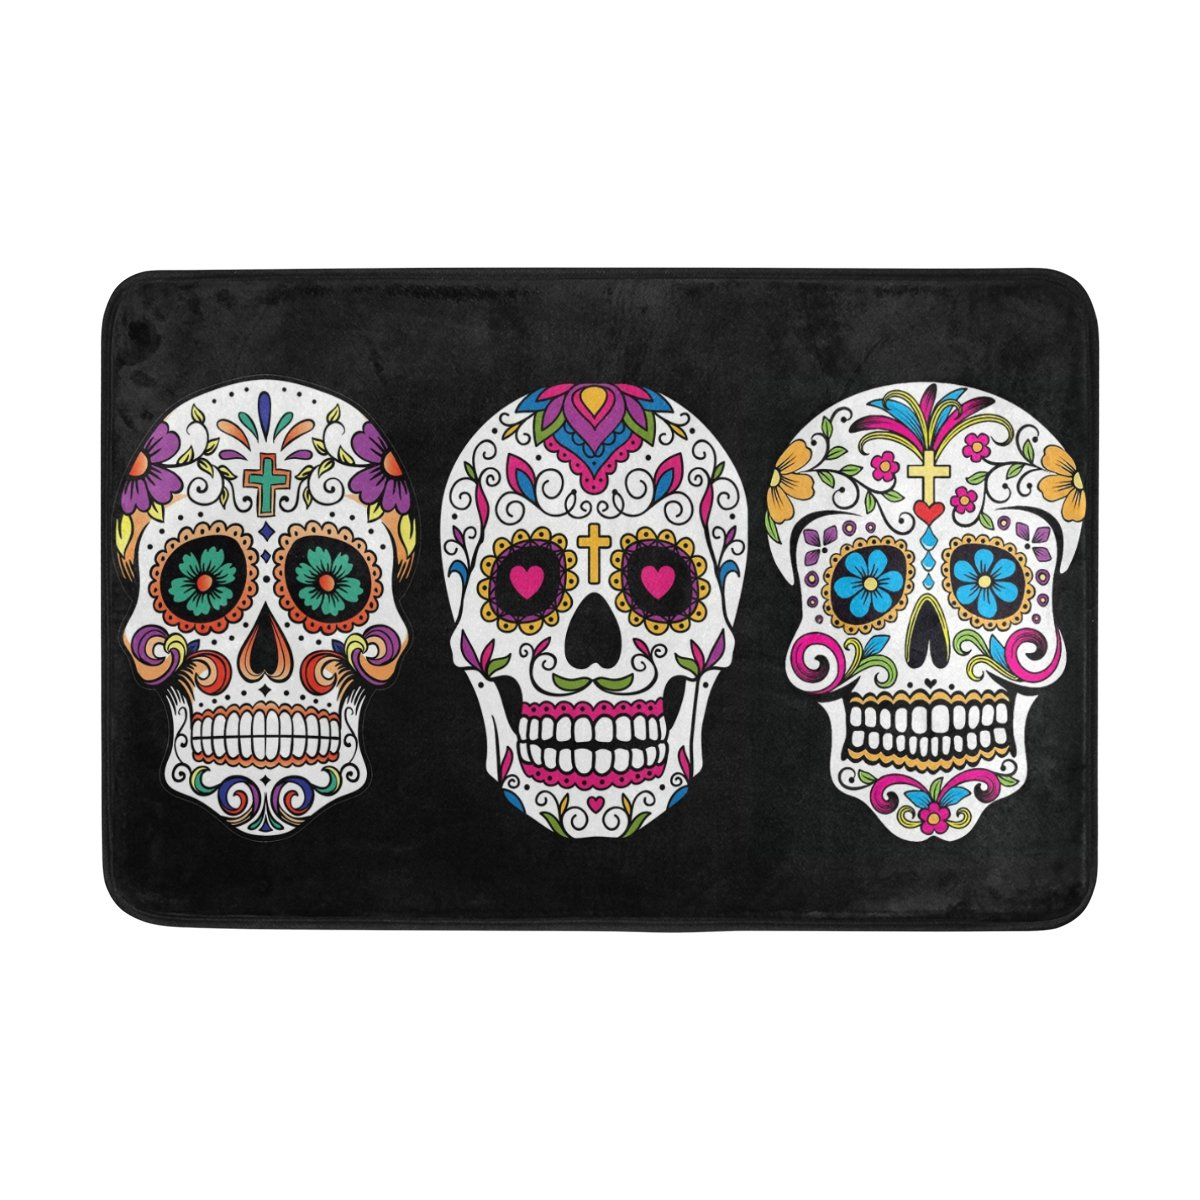 DemonCo Sugar Skull Door Mat Rug, Mexican Dia De Los Muertos Day of The Dead Welcome Mat Doormat Entrance Kitchen Bathroom Mat Rug Outdoor Indoor Decor 23.6 X 15.7 Inches